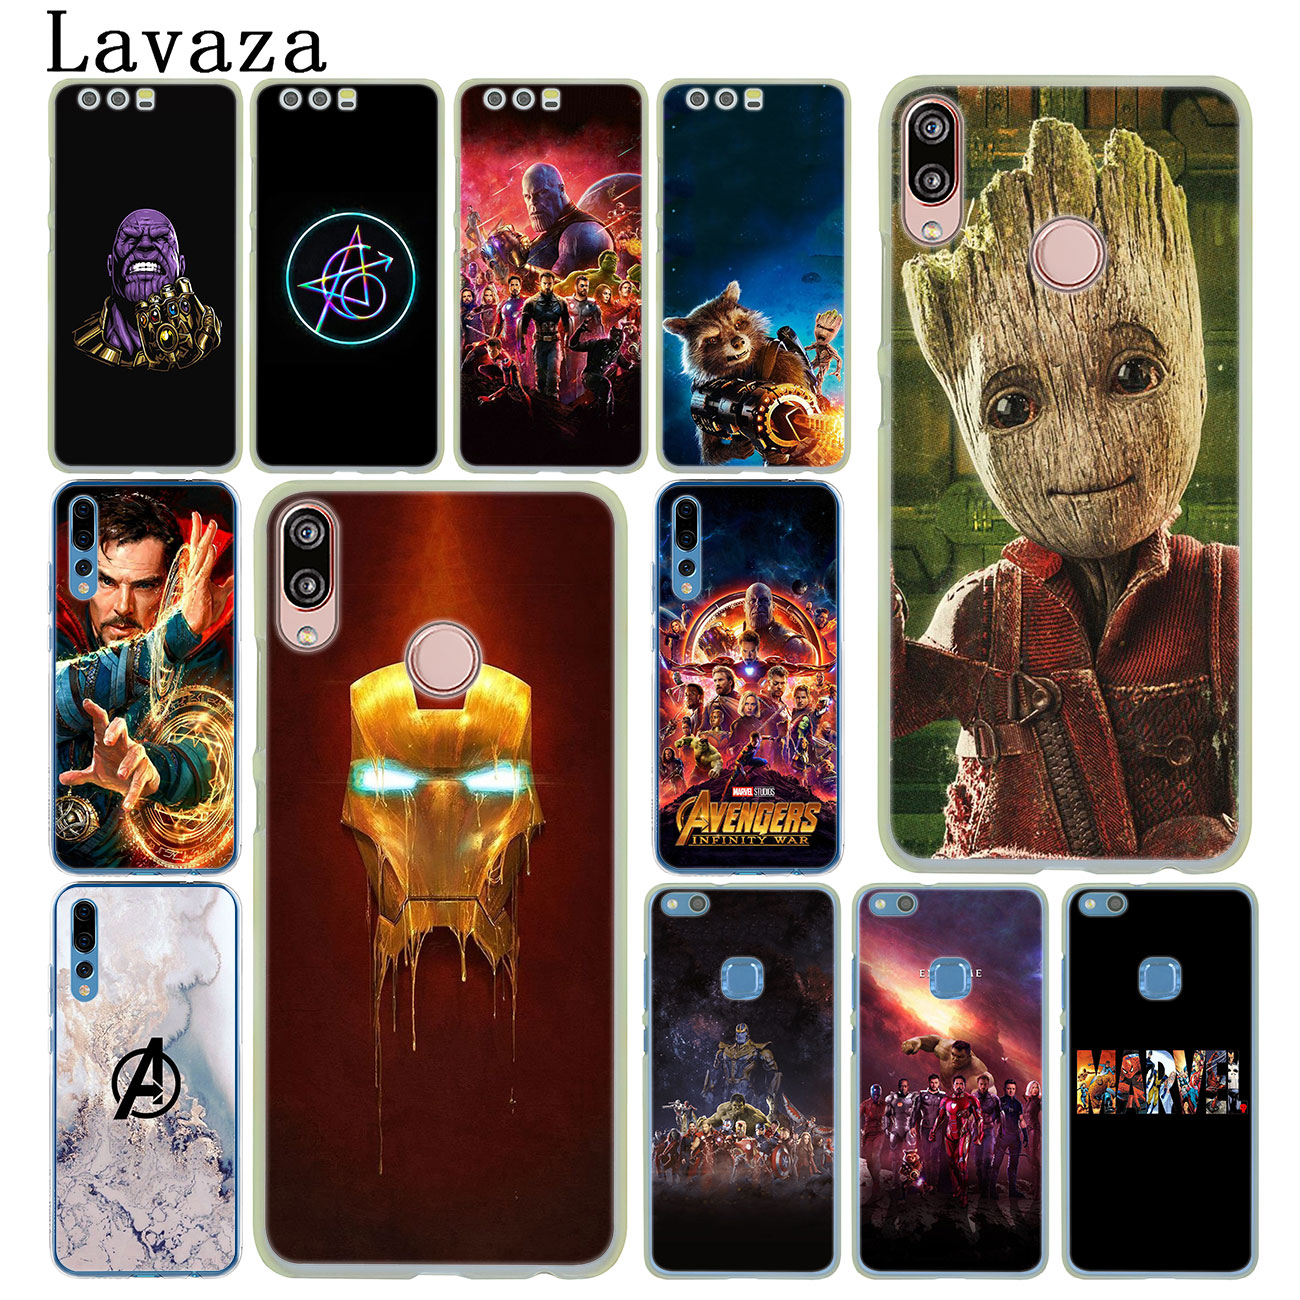 Thanos <font><b>Marvel</b></font> Avengers Endgame Iron Man <font><b>Case</b></font> for <font><b>Huawei</b></font> Y9 <font><b>Y7</b></font> Y6 Prime <font><b>2019</b></font> 2018 Honor 20 8C 8X 8 9 9X 10 Lite 7C 7X 6A 7A Pro image